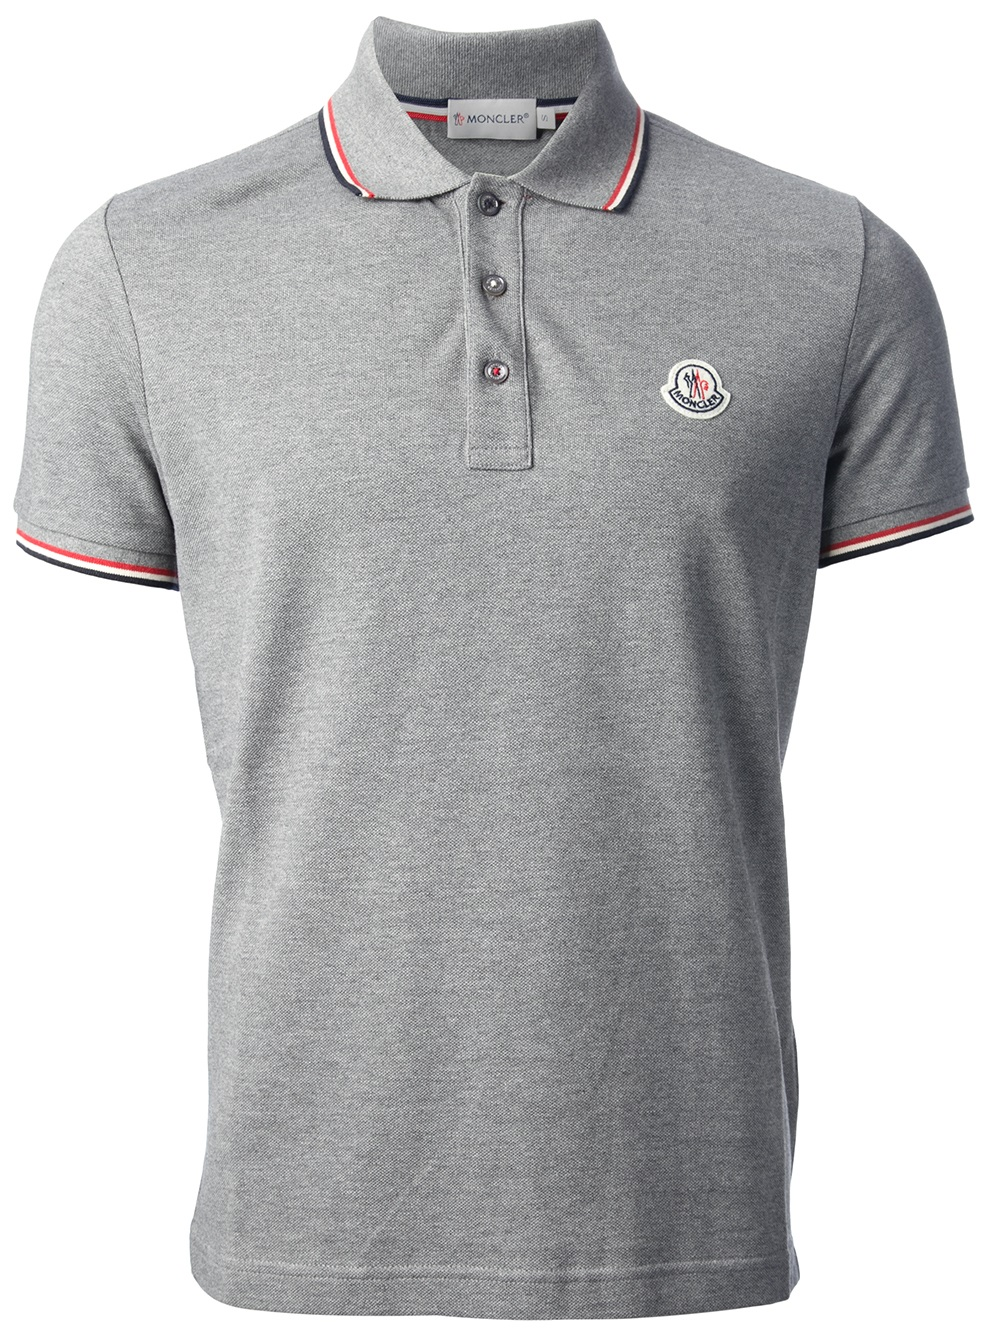 moncler short sleeve polo shirt in gray for men lyst. Black Bedroom Furniture Sets. Home Design Ideas